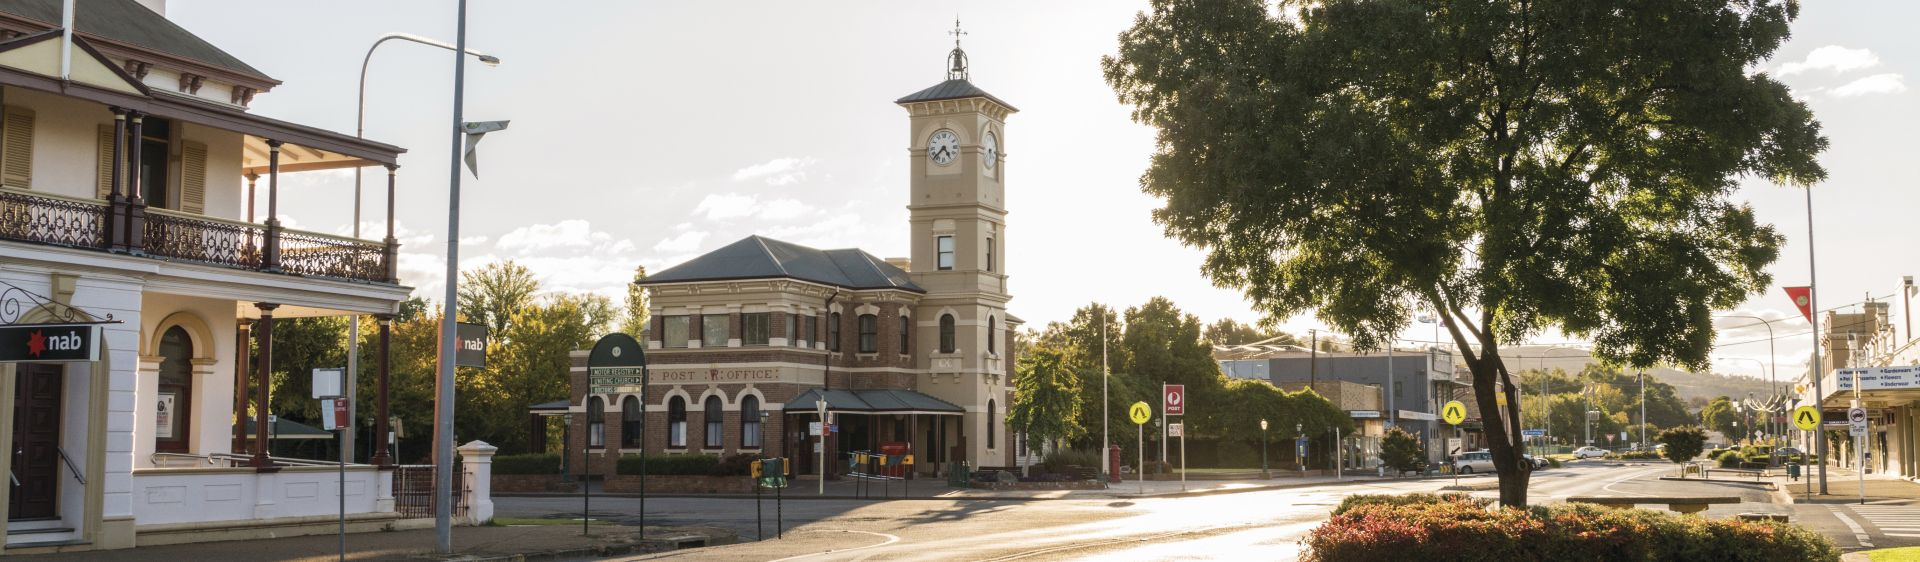 View of the 1881-built Cootamundra Post Office, Riverina, NSW